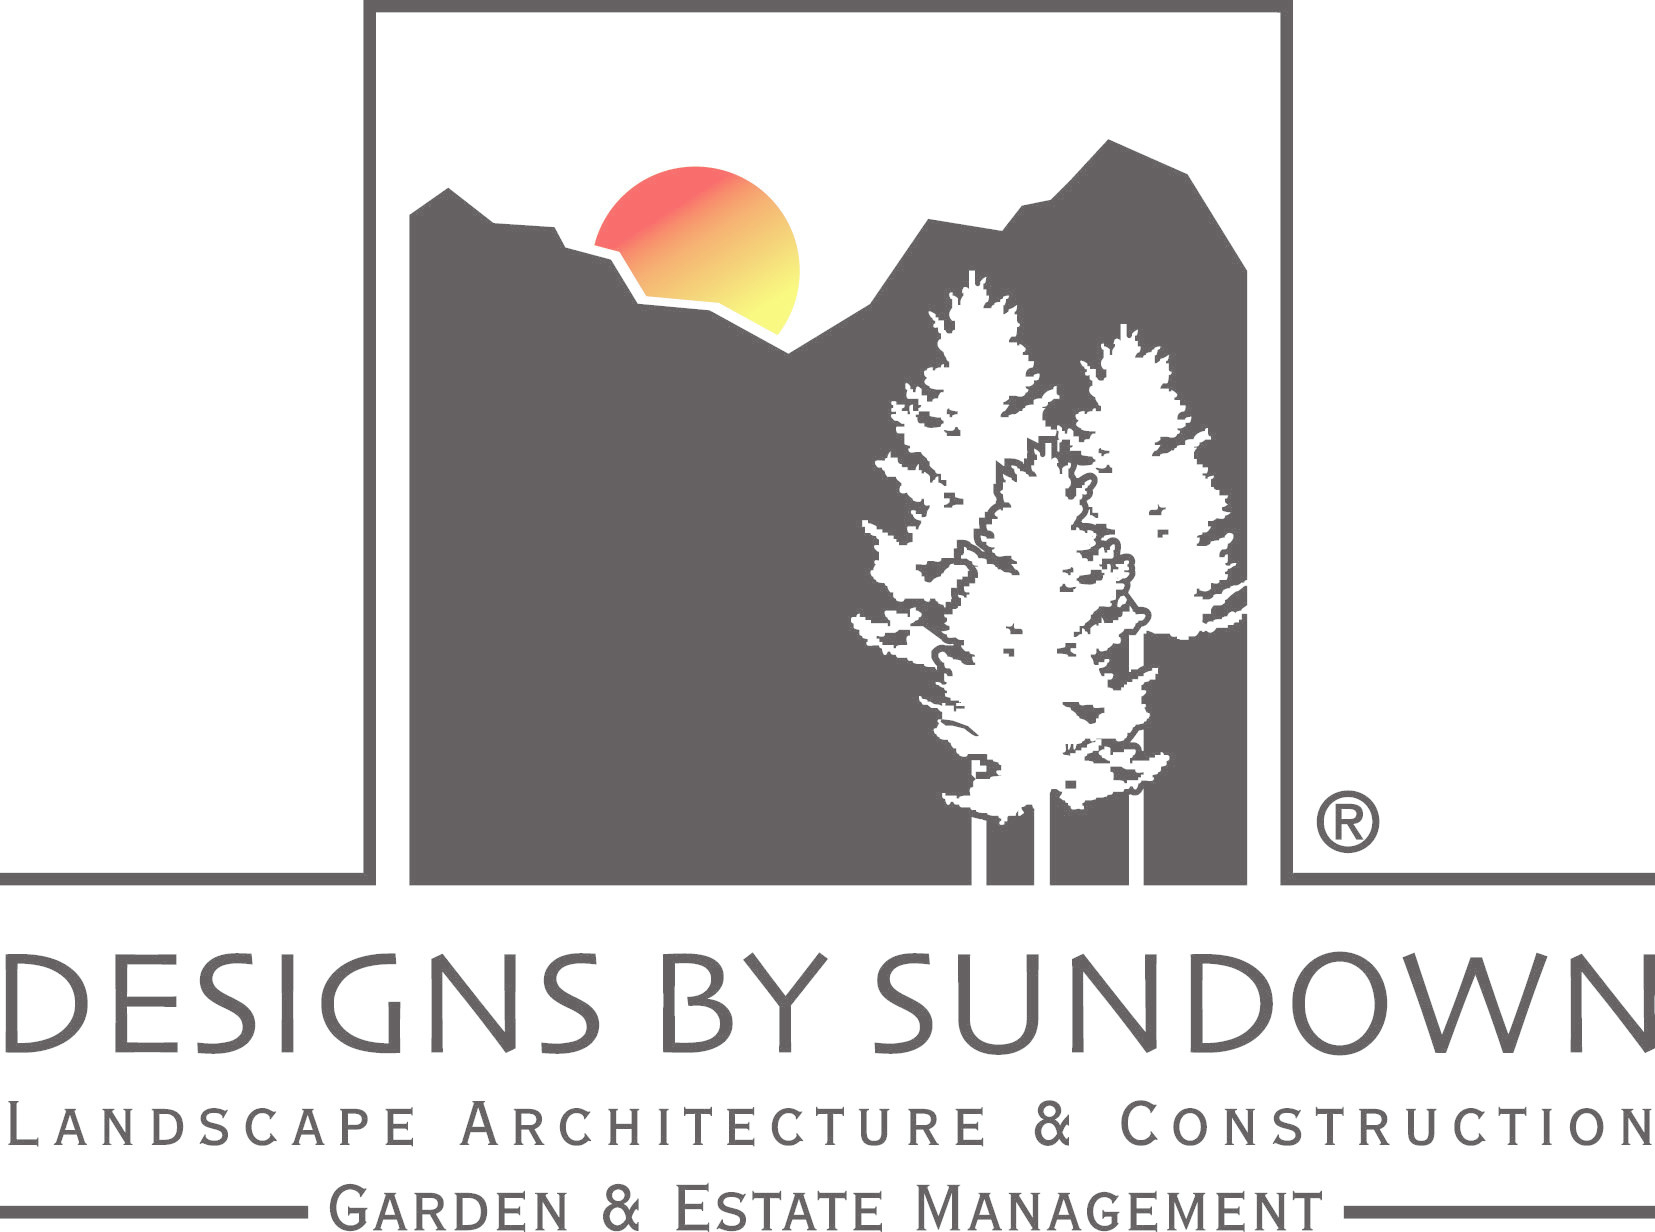 Designs by Sundown